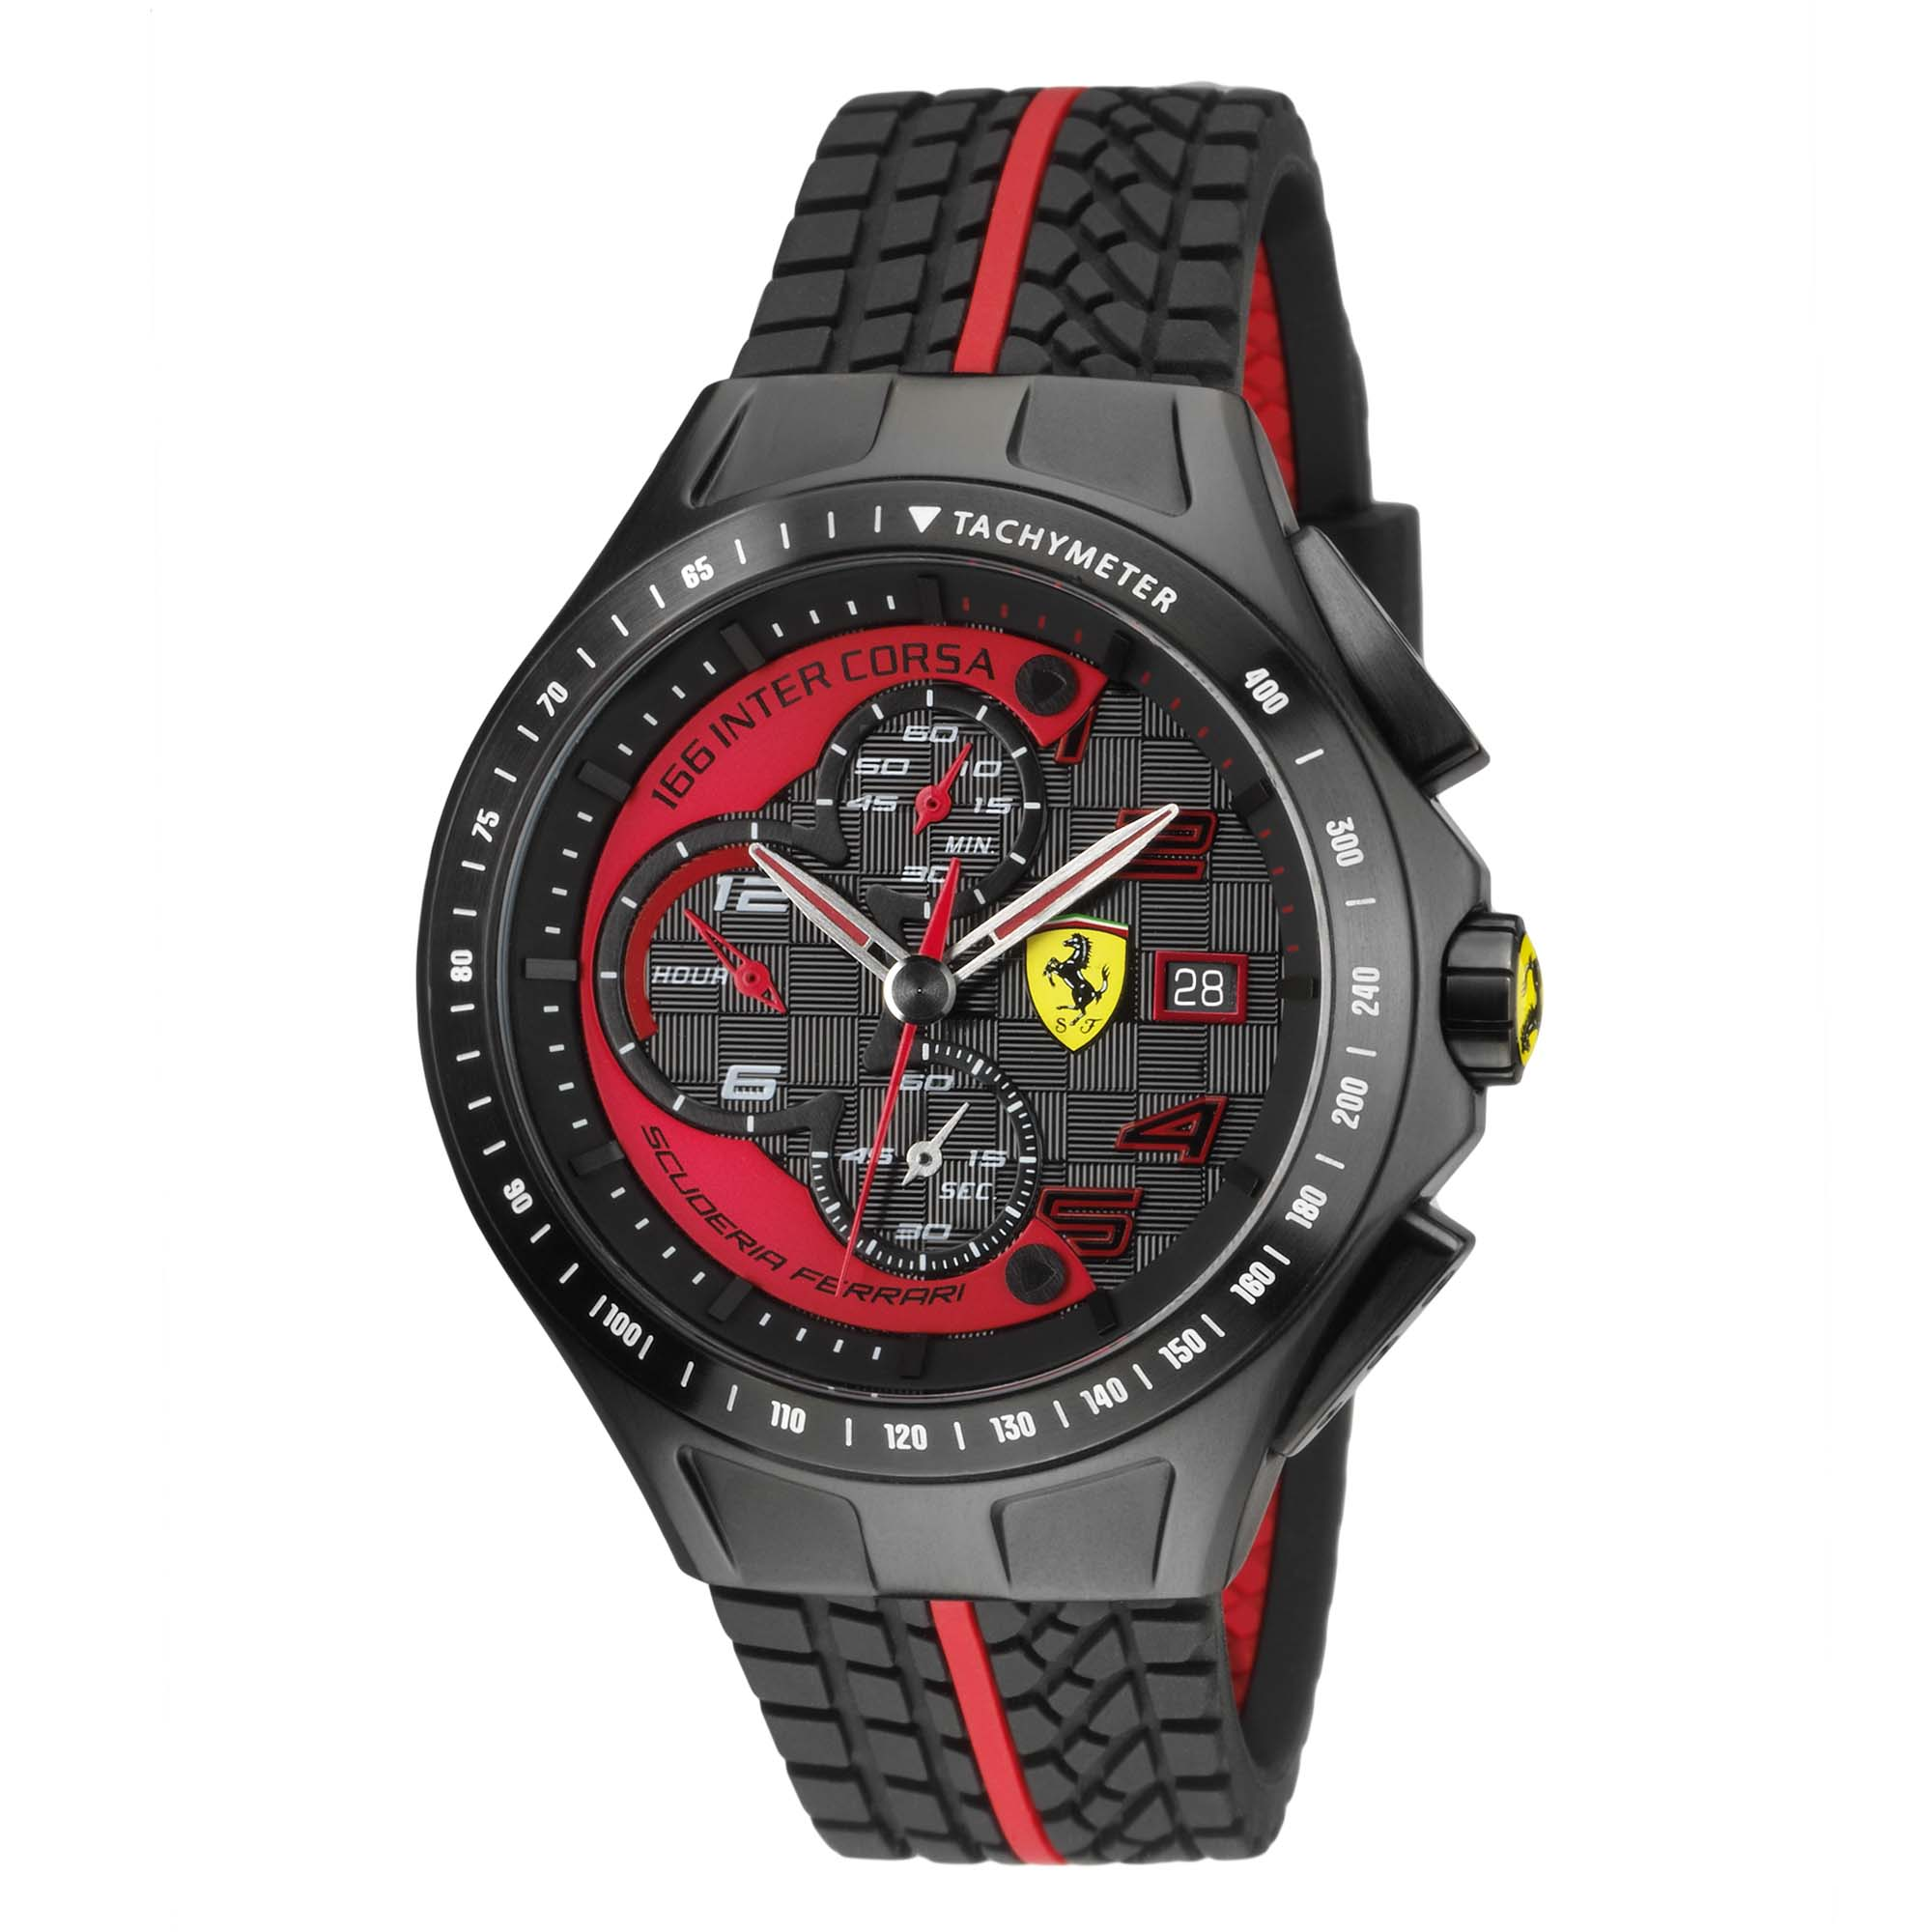 Replica ferrari watch with red colored dial best swiss breitling replica watches show for Replica watches